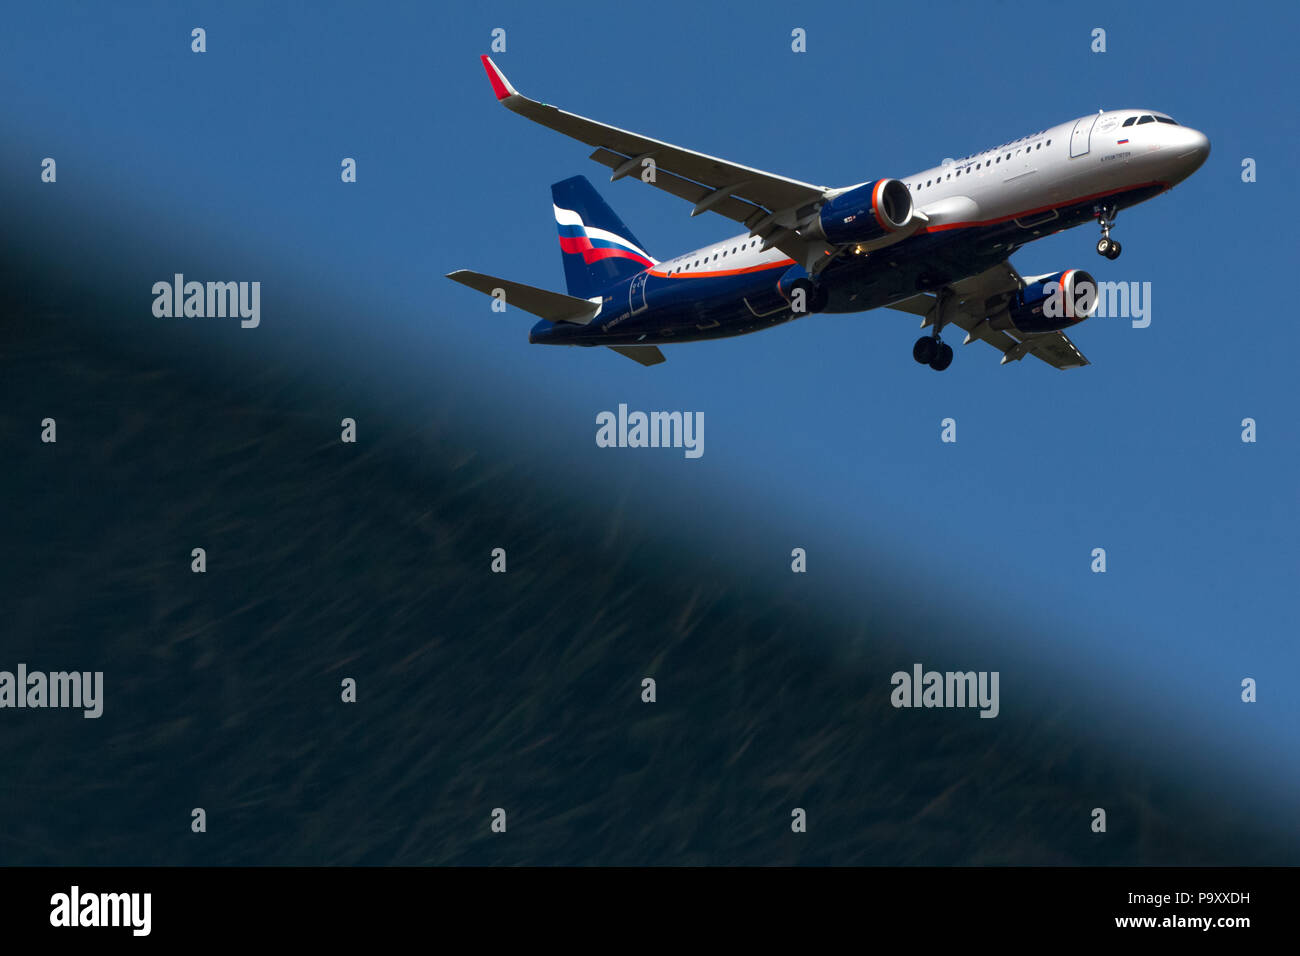 Airbus A320 Sharklets Stock Photos & Airbus A320 Sharklets Stock